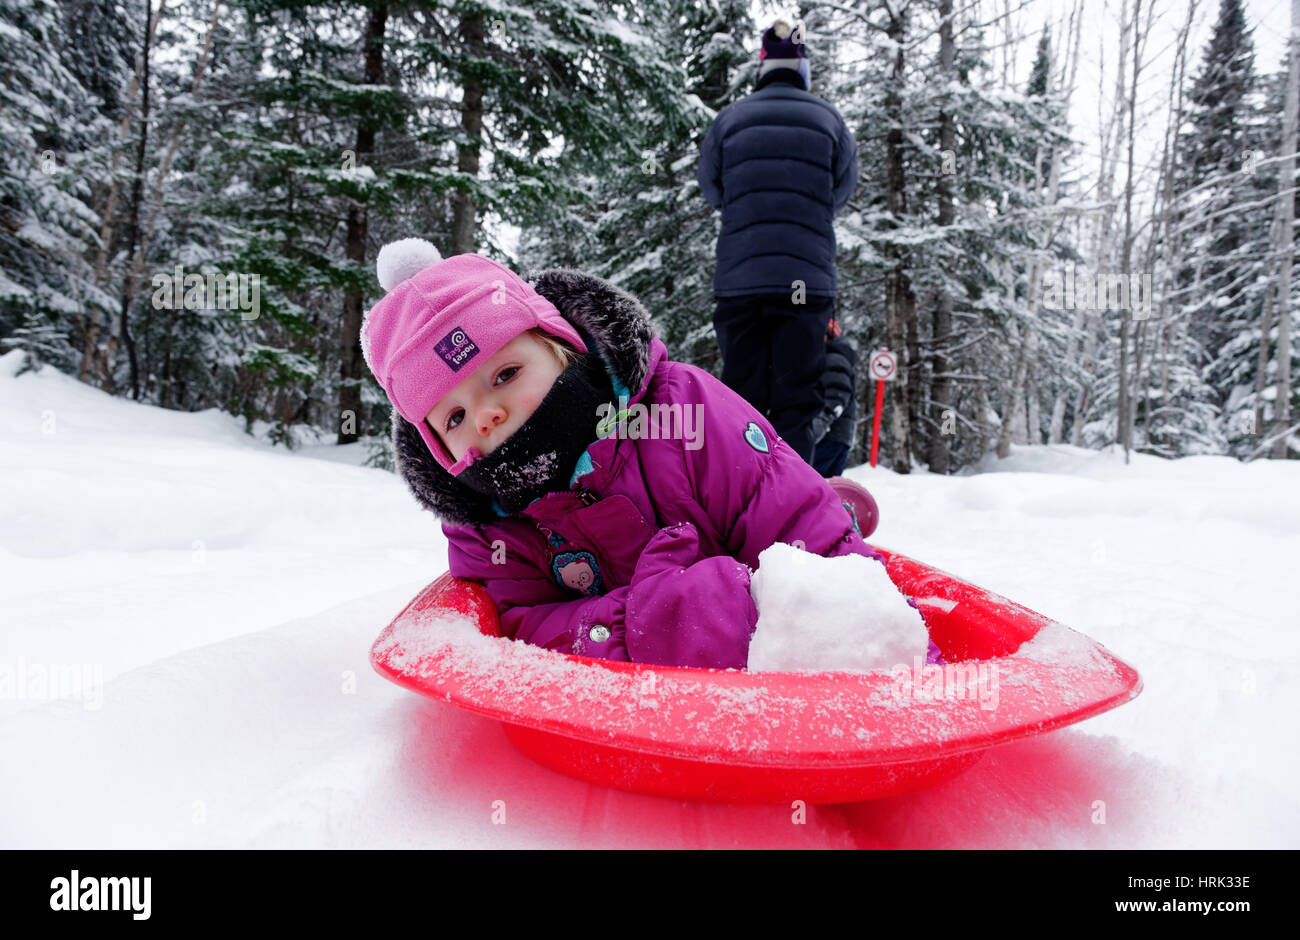 A little girl (2 yrs old) being pulled by her mother in a sledge - Stock Image